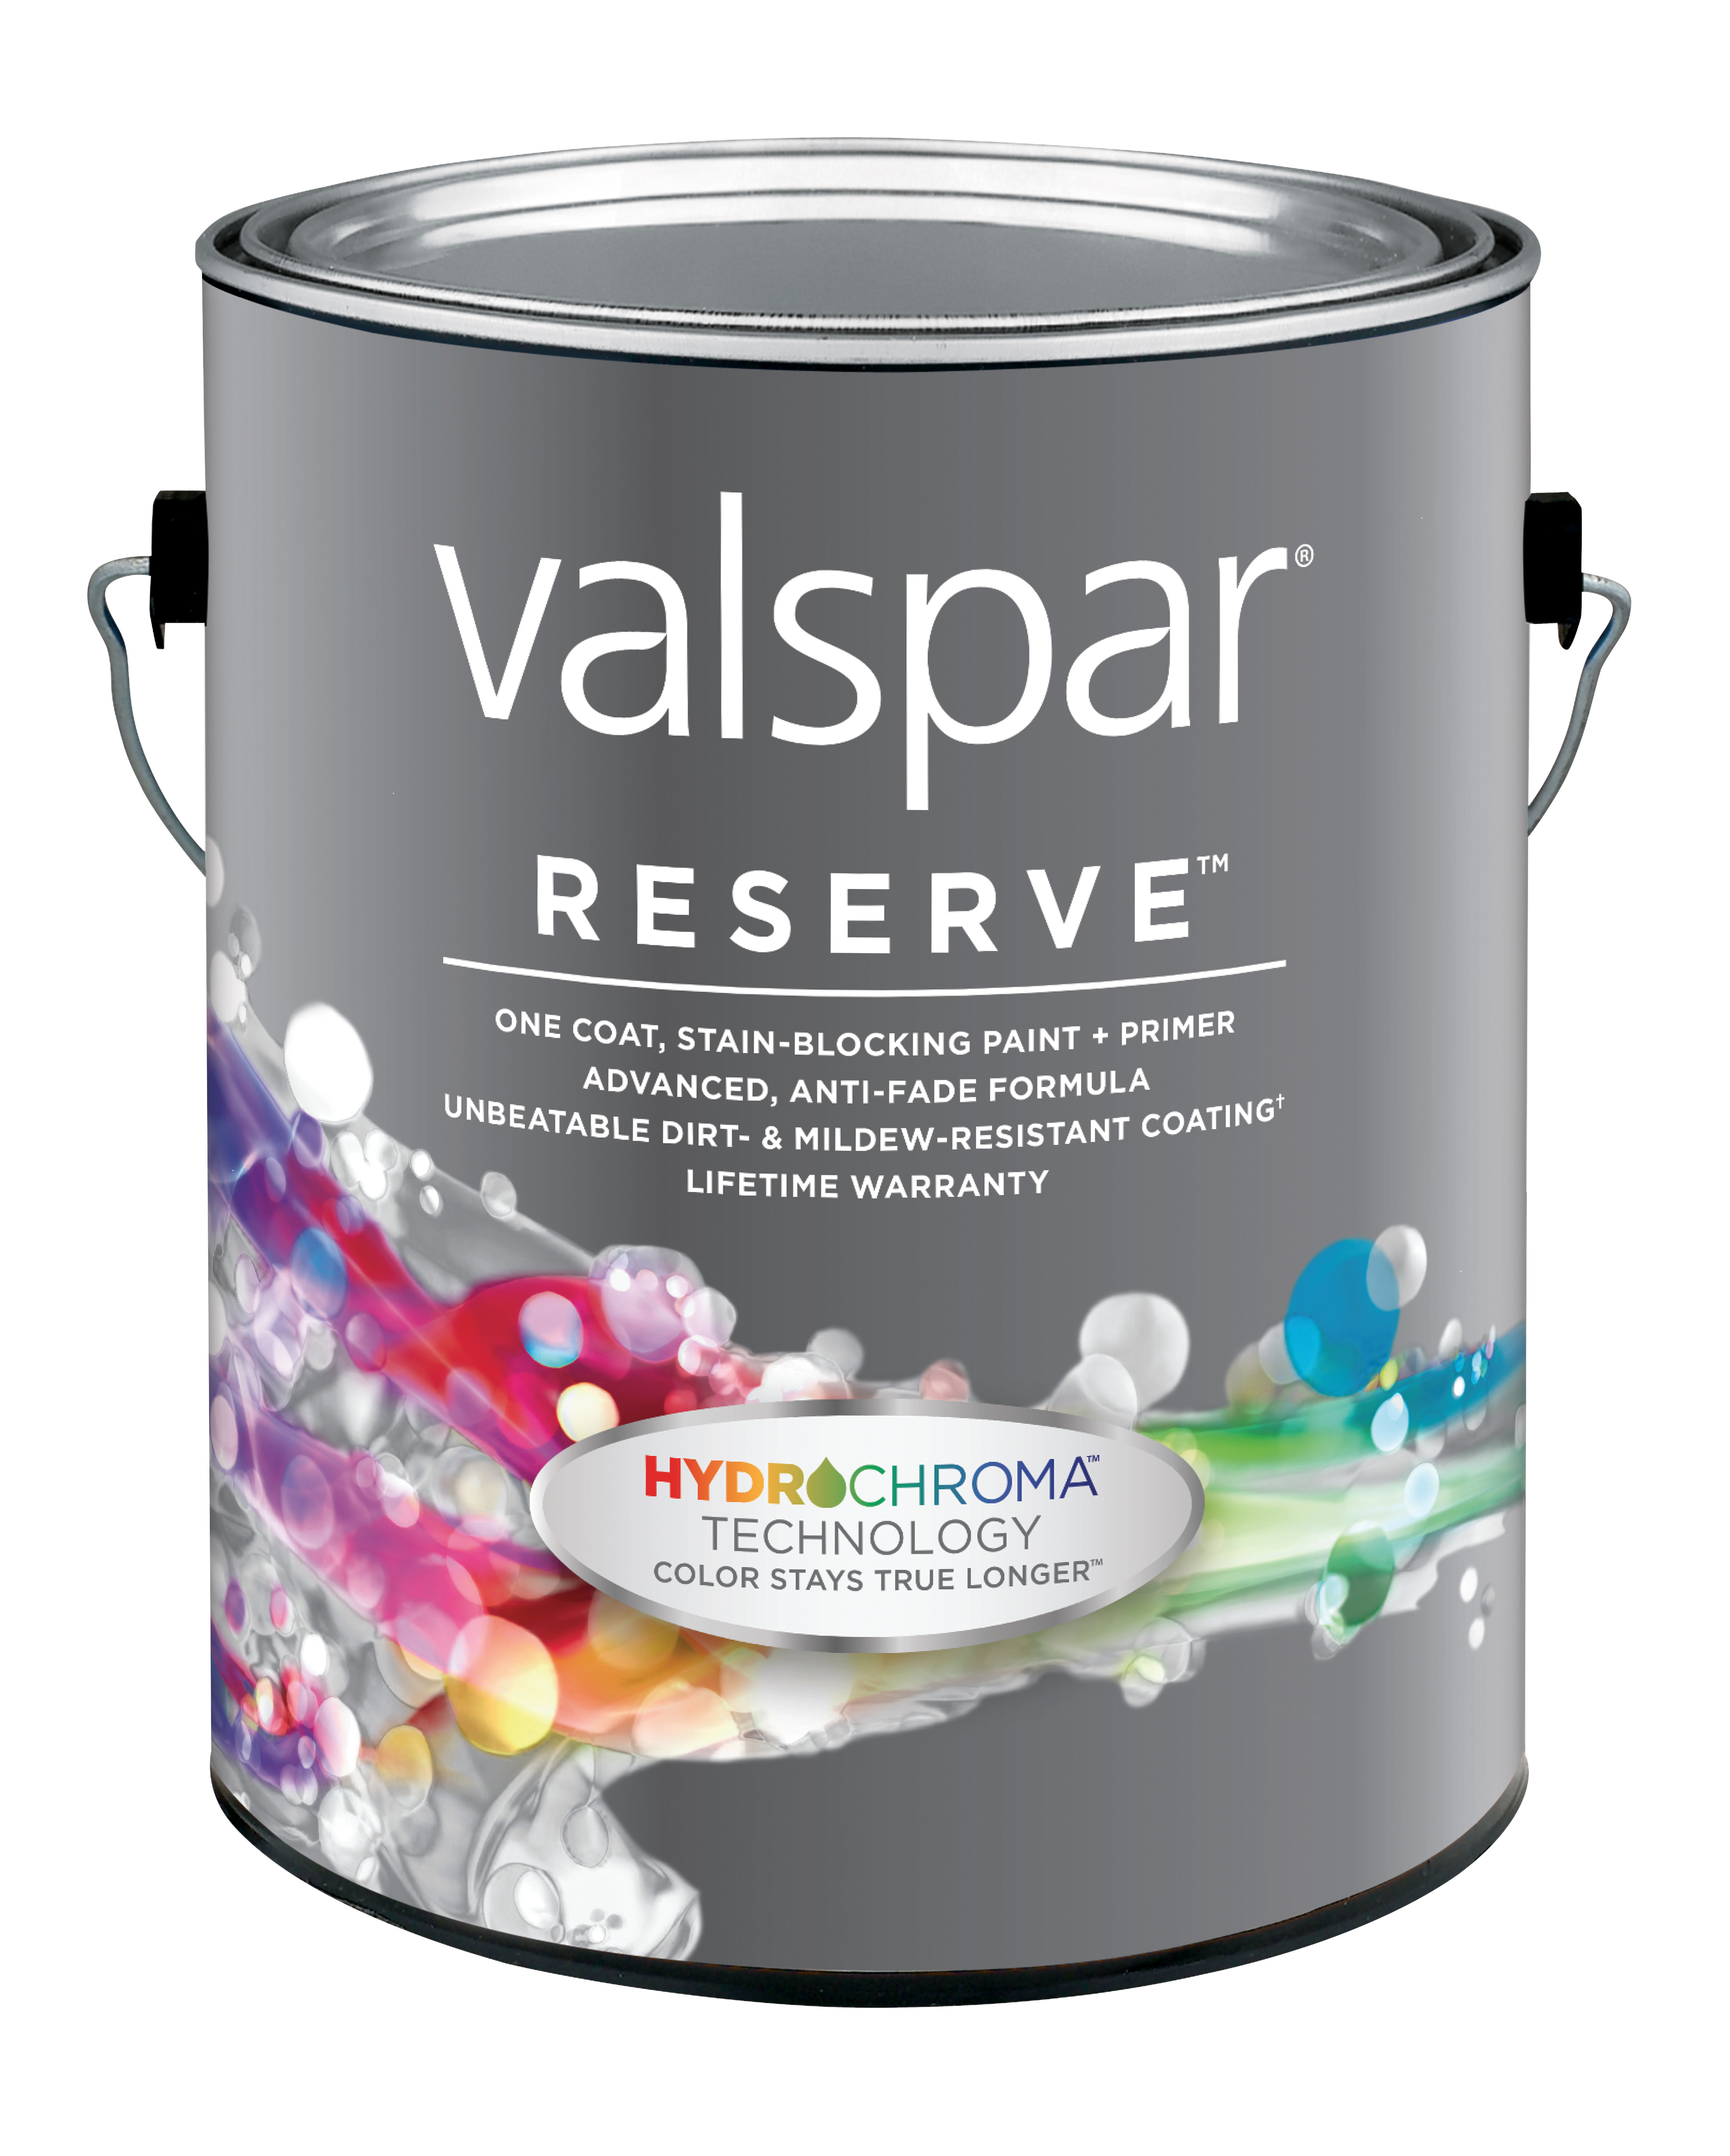 Valspar And Lowe S Unveil A Super Premium Paint Primer With Unsurped Durability Color Accuracy Coverage Business Wire